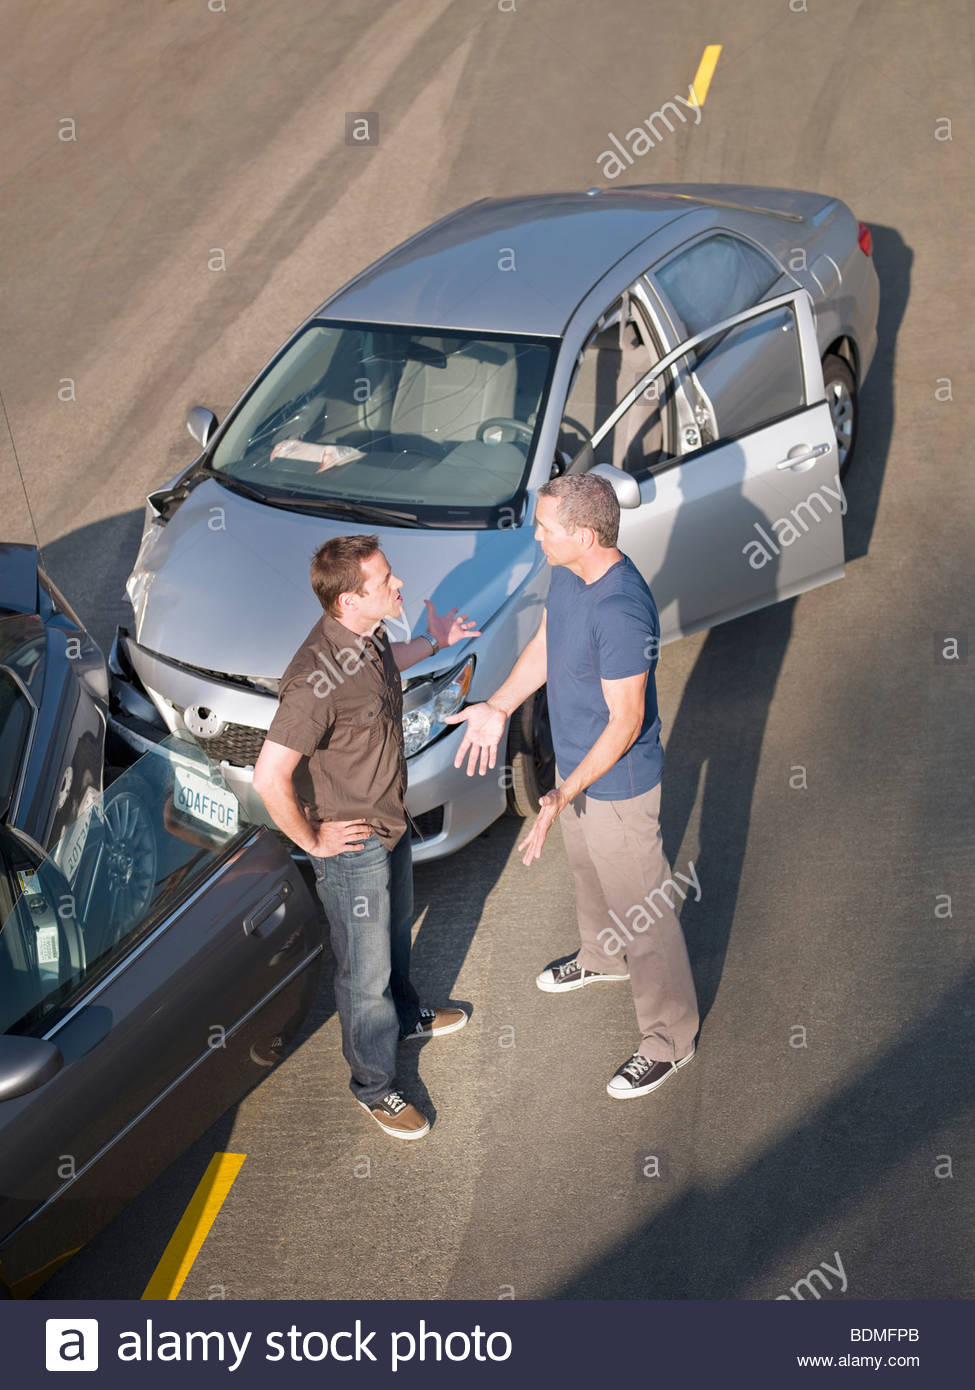 Two men arguing about damage in car collision - Stock Image